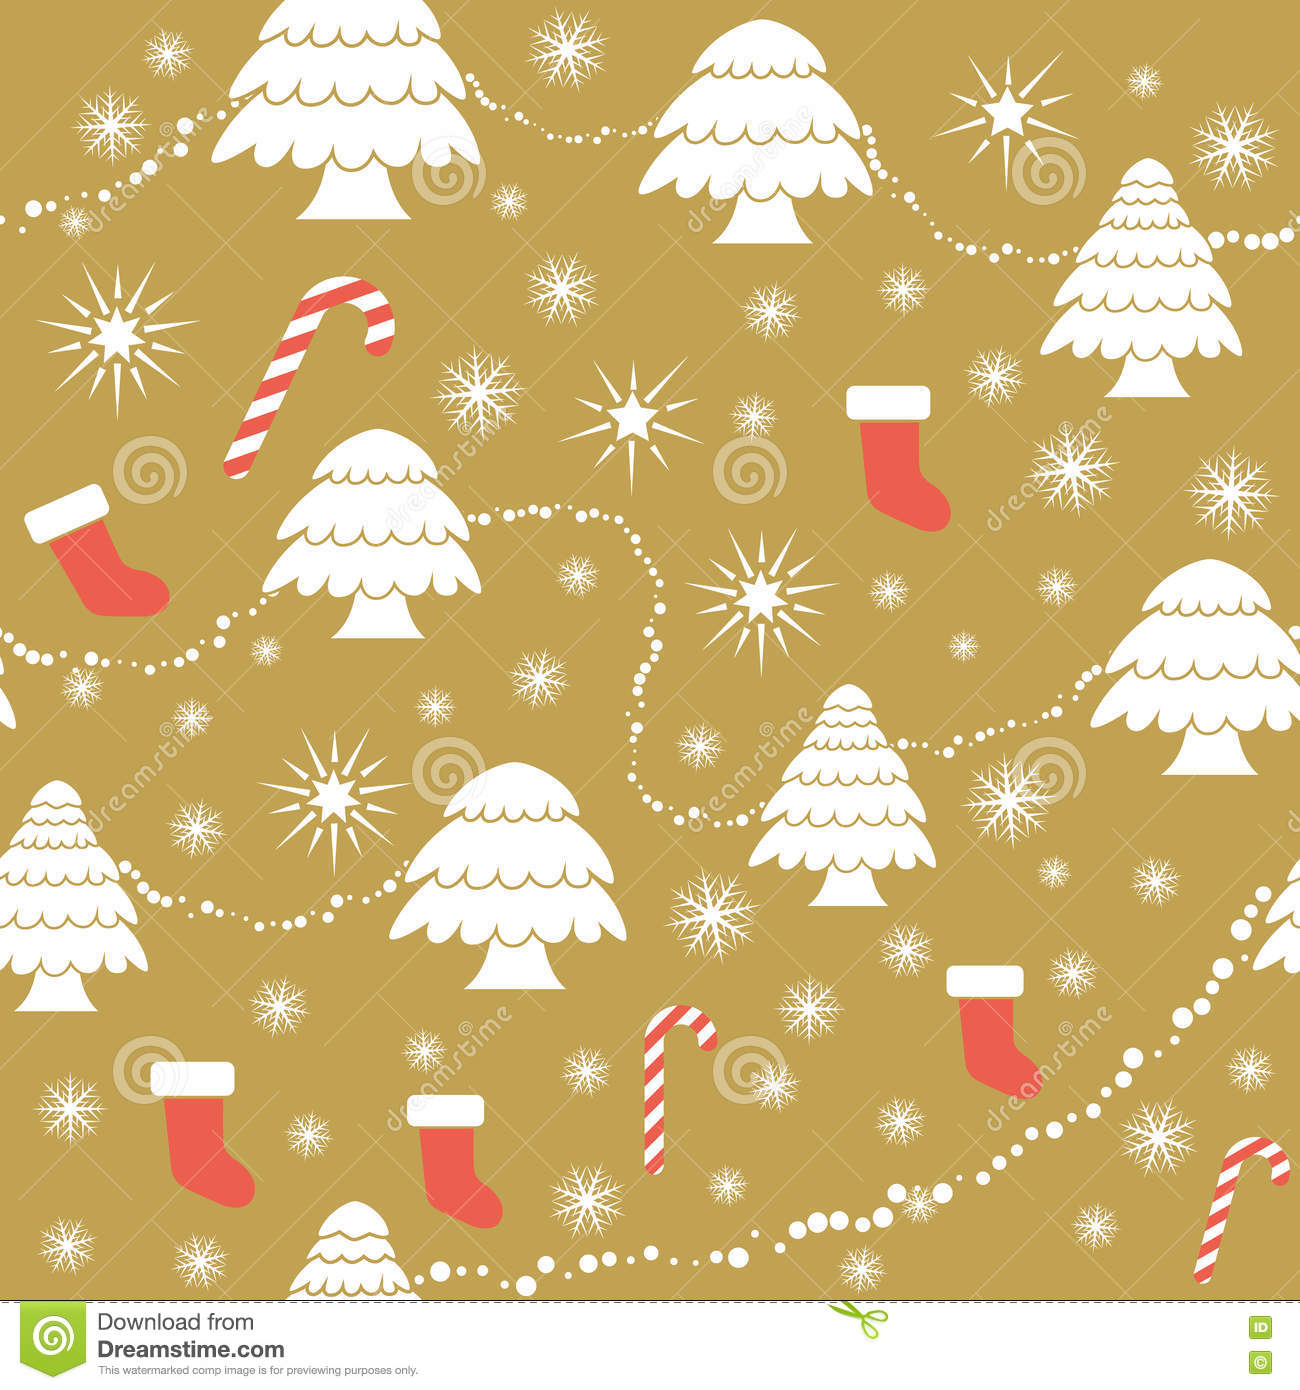 Seamless Christmas Pattern In Flat Style Vector Christmas Tree Garland Ribbon Gifts Stock Vector Illustration Of Snow Seamless 79670746